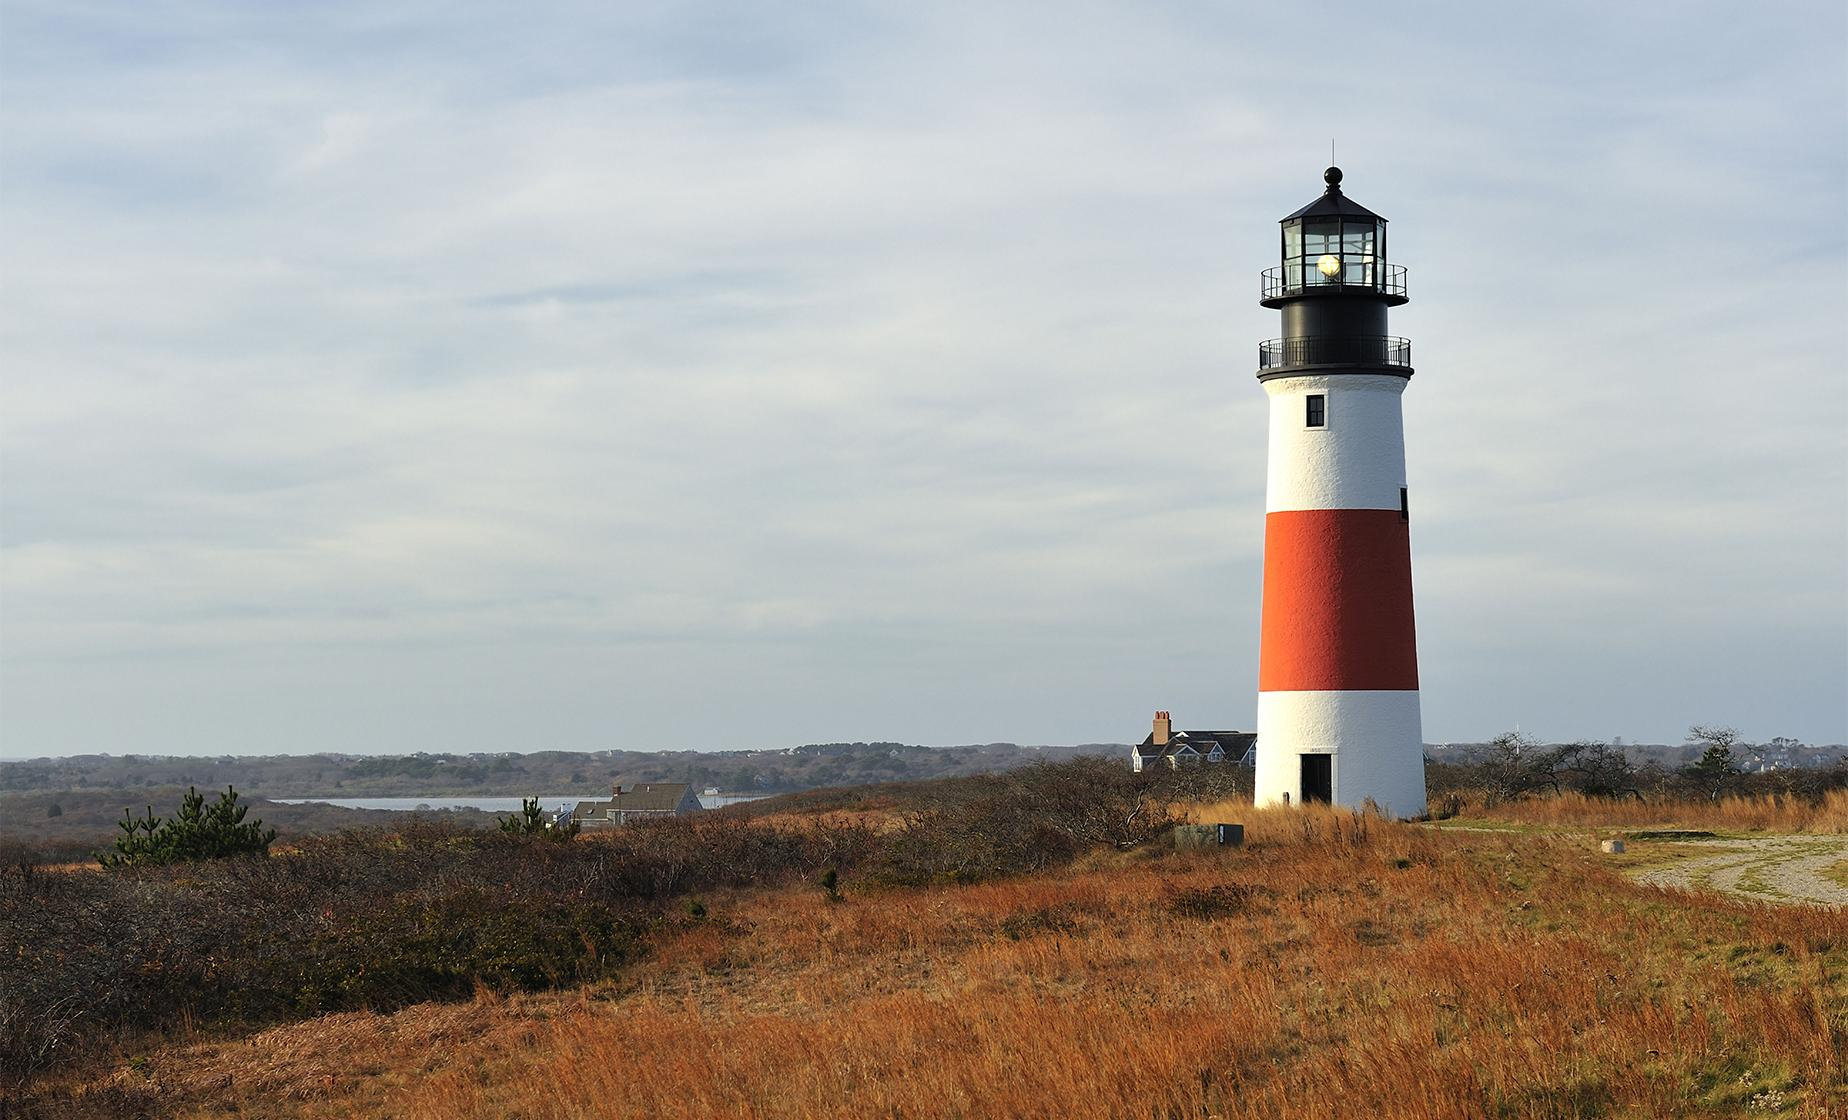 Fall Foliage on the Cape Tour in Boston (Cape Cod, Sandwich Glass Museum)